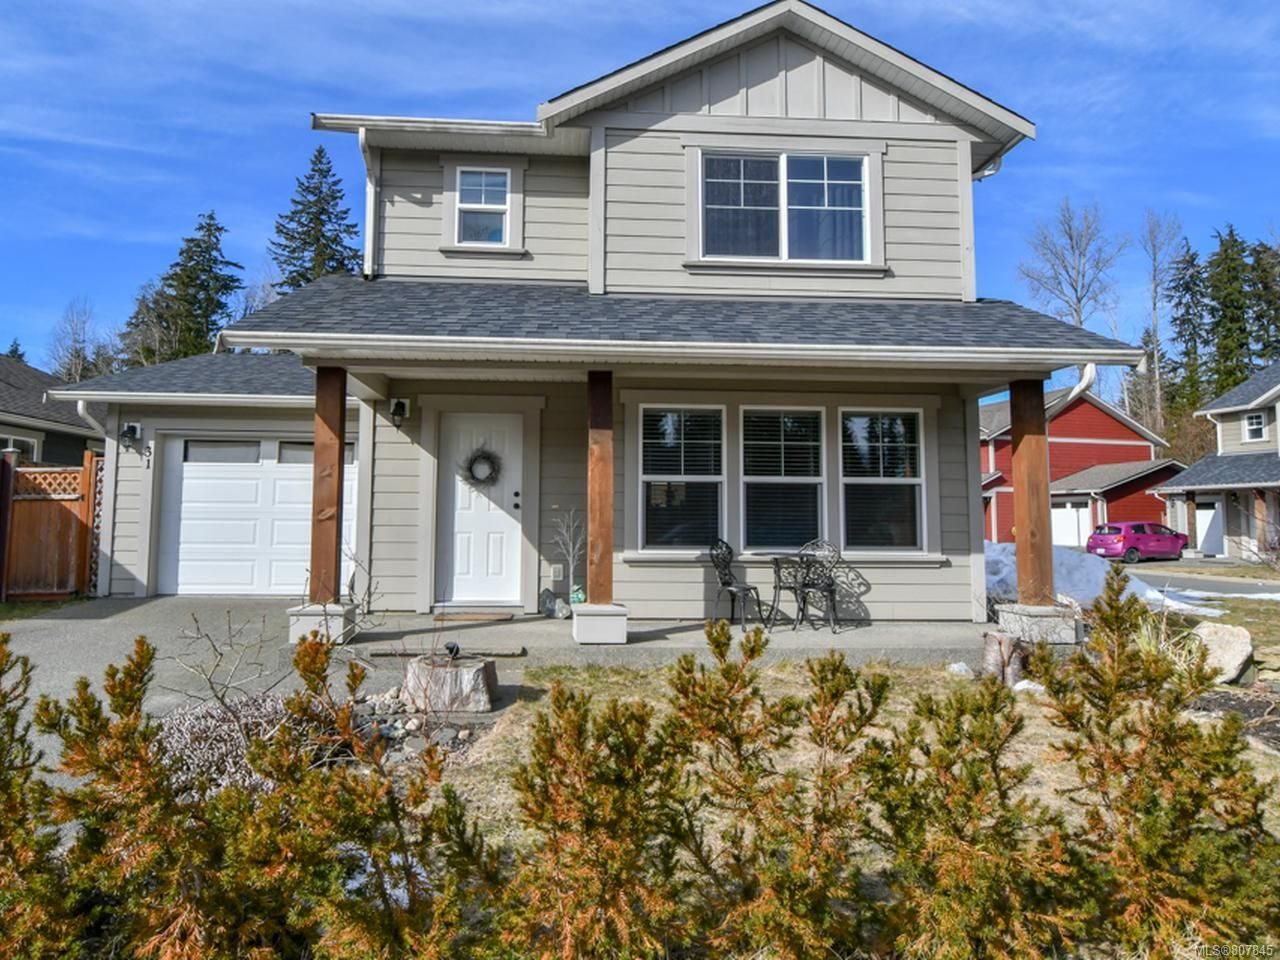 Main Photo: 31 1120 EVERGREEN ROAD in CAMPBELL RIVER: CR Campbell River Central House for sale (Campbell River)  : MLS®# 807845